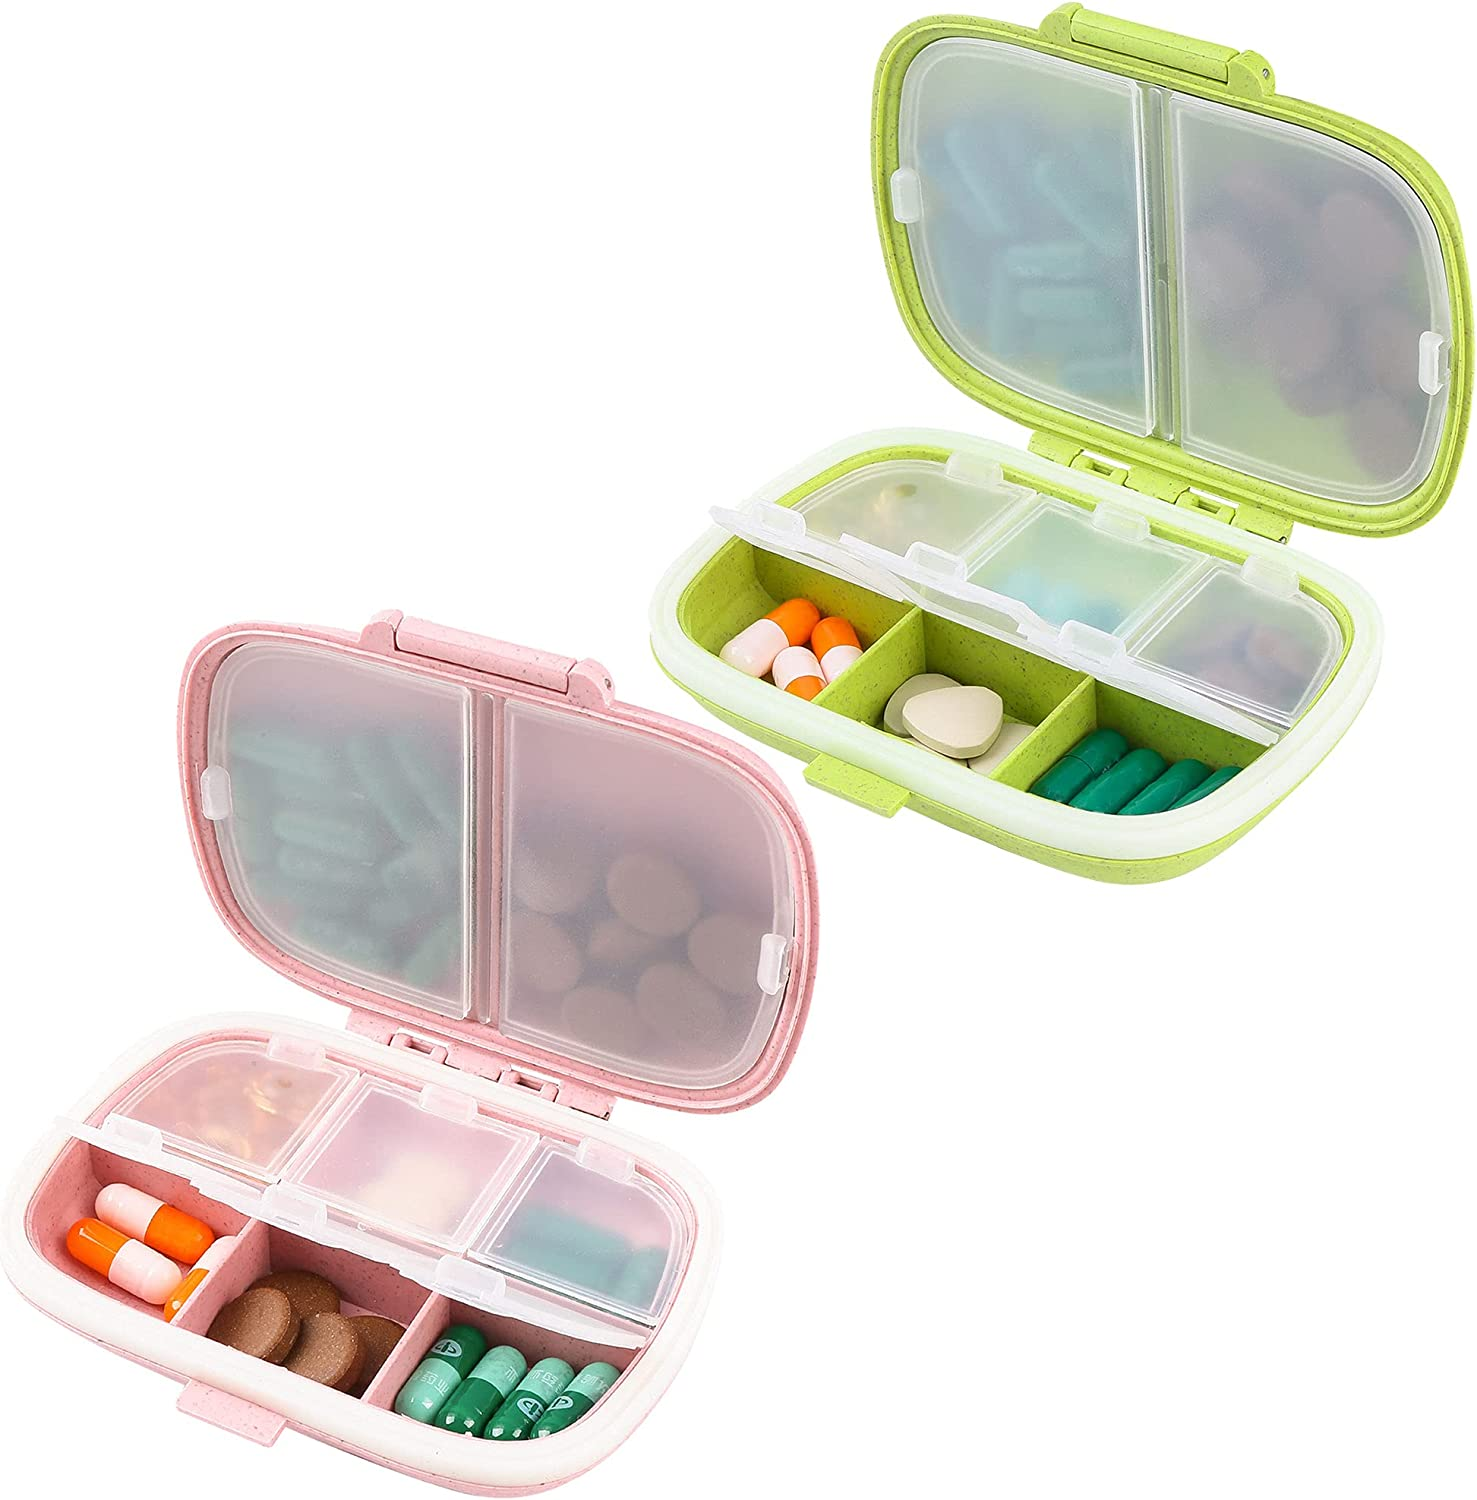 2 Credence Pack Daily Pill Case Organizer Compartment Import Me 8 Drug Box